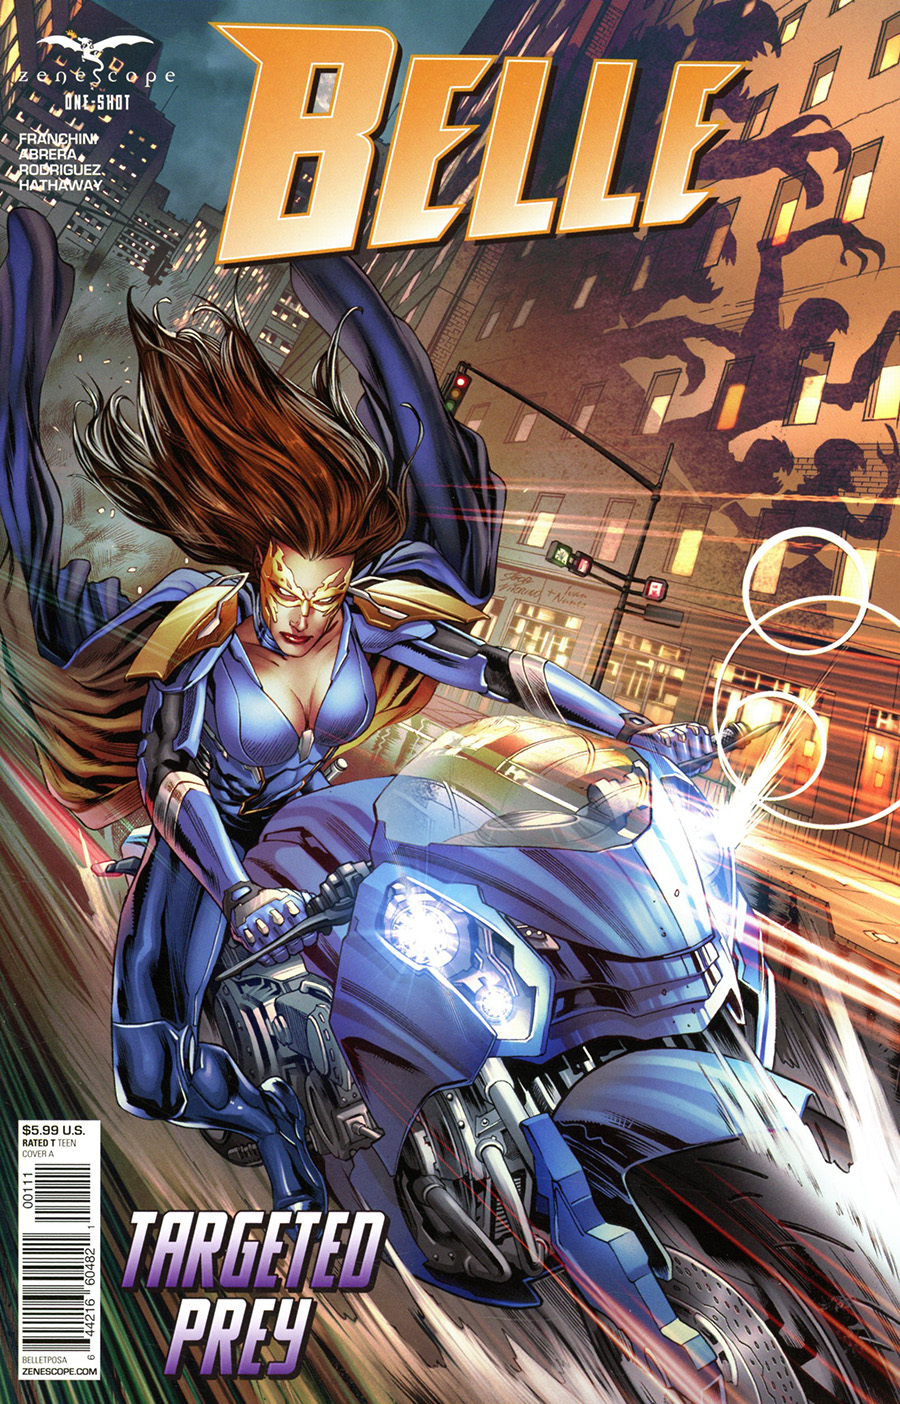 Grimm Fairy Tales Presents Belle Targeted Prey One Shot Cover A Igor Vitorino